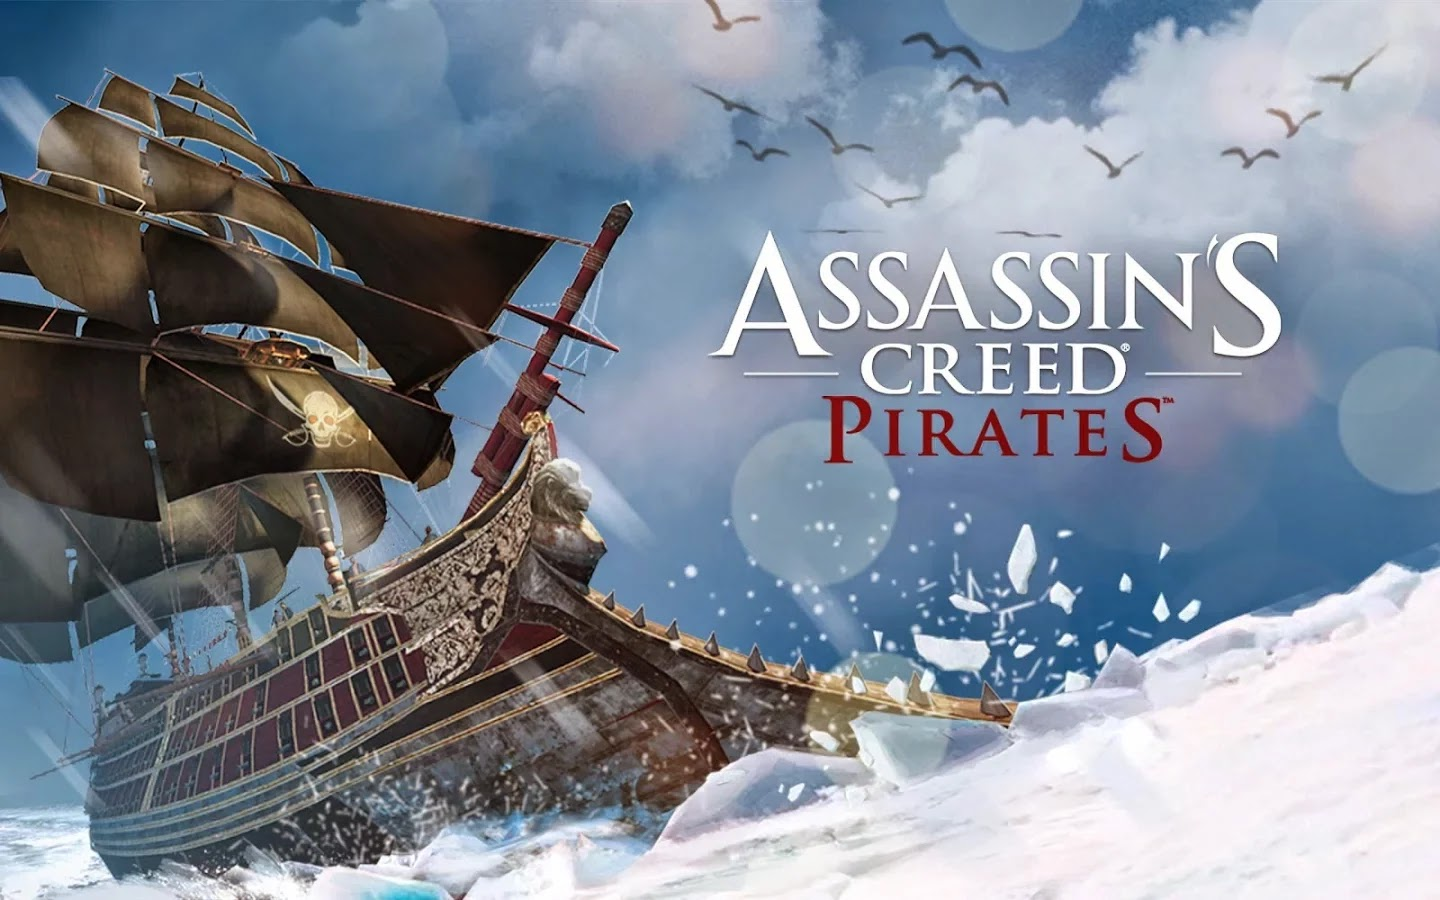 Assassin's Creed Pirates v1.6.0 Mod [Unlimited Money]